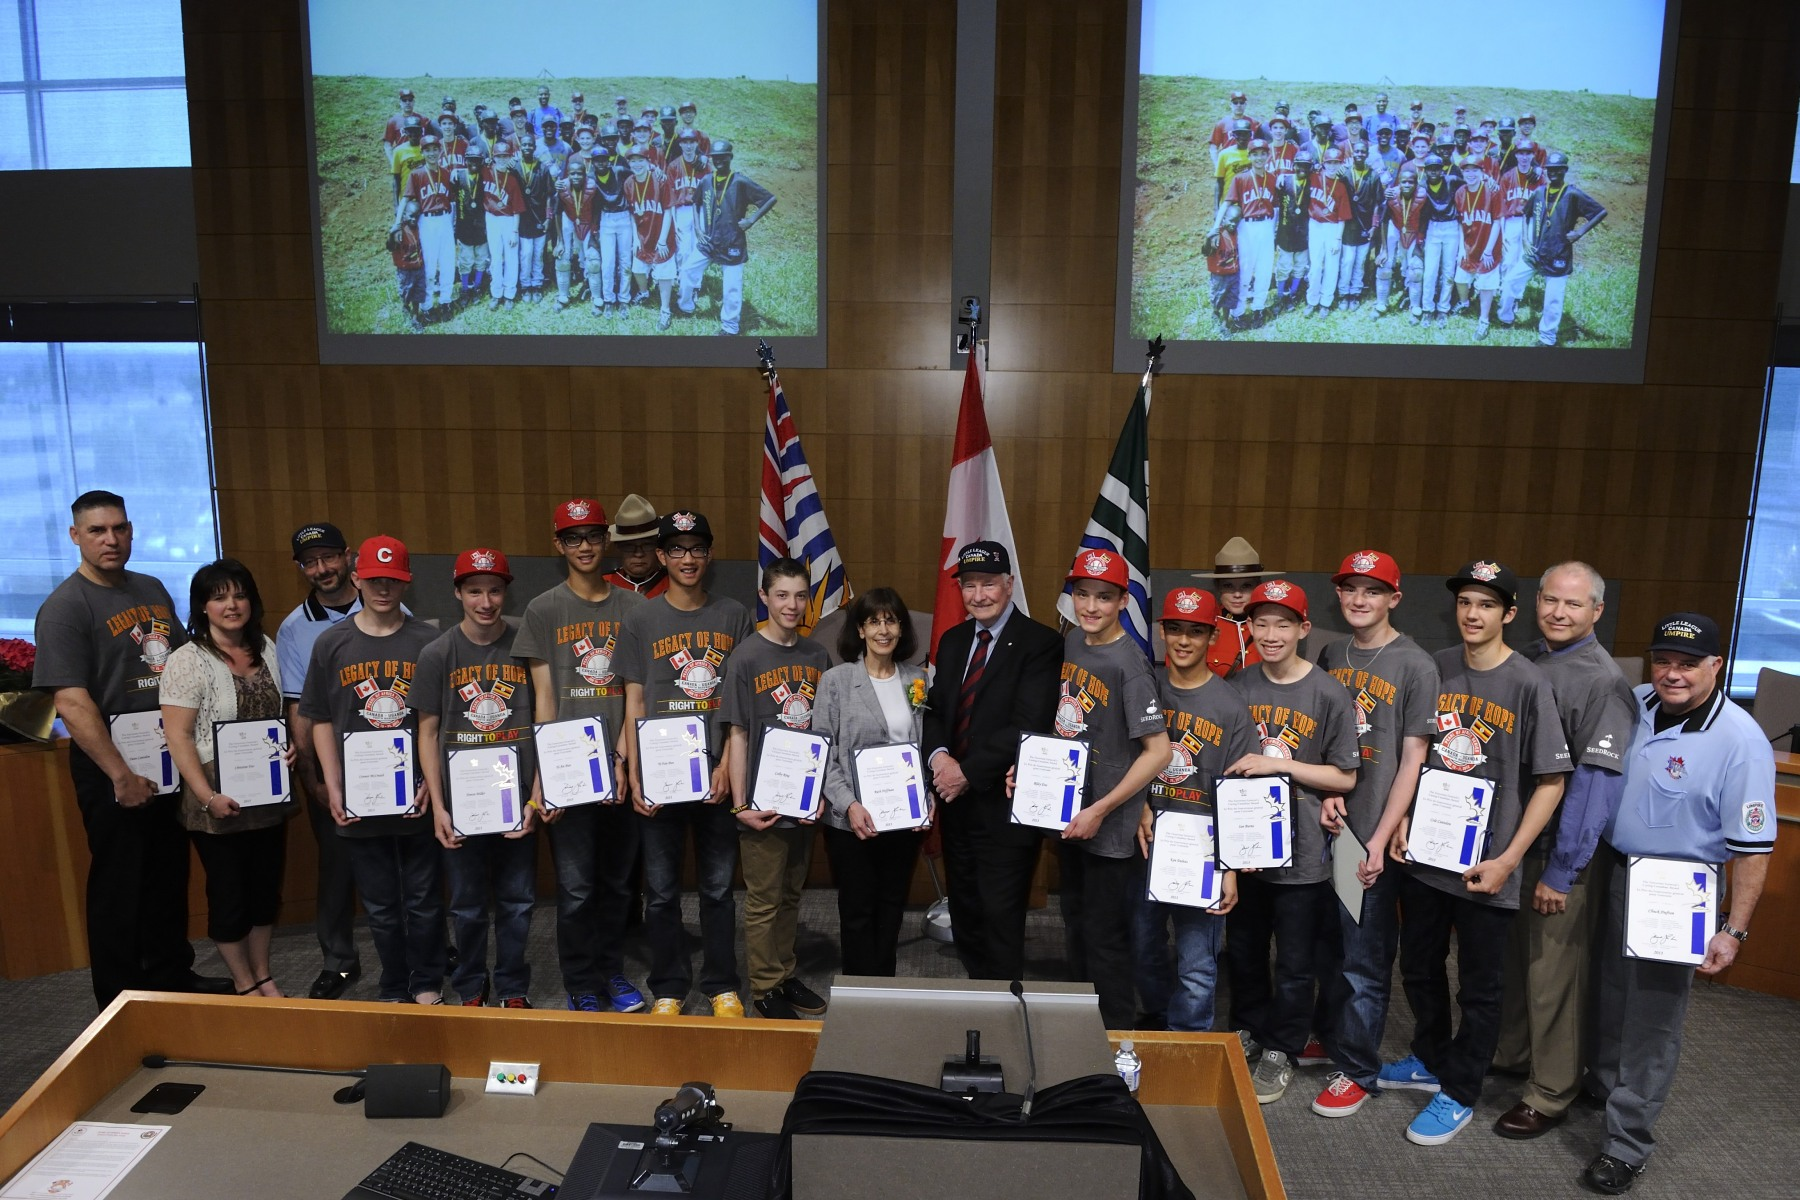 His Excellency presented the Governor General's Caring Canadian Award to the Langley Little League team for their community service during the 2012 Pearl of Africa Series.